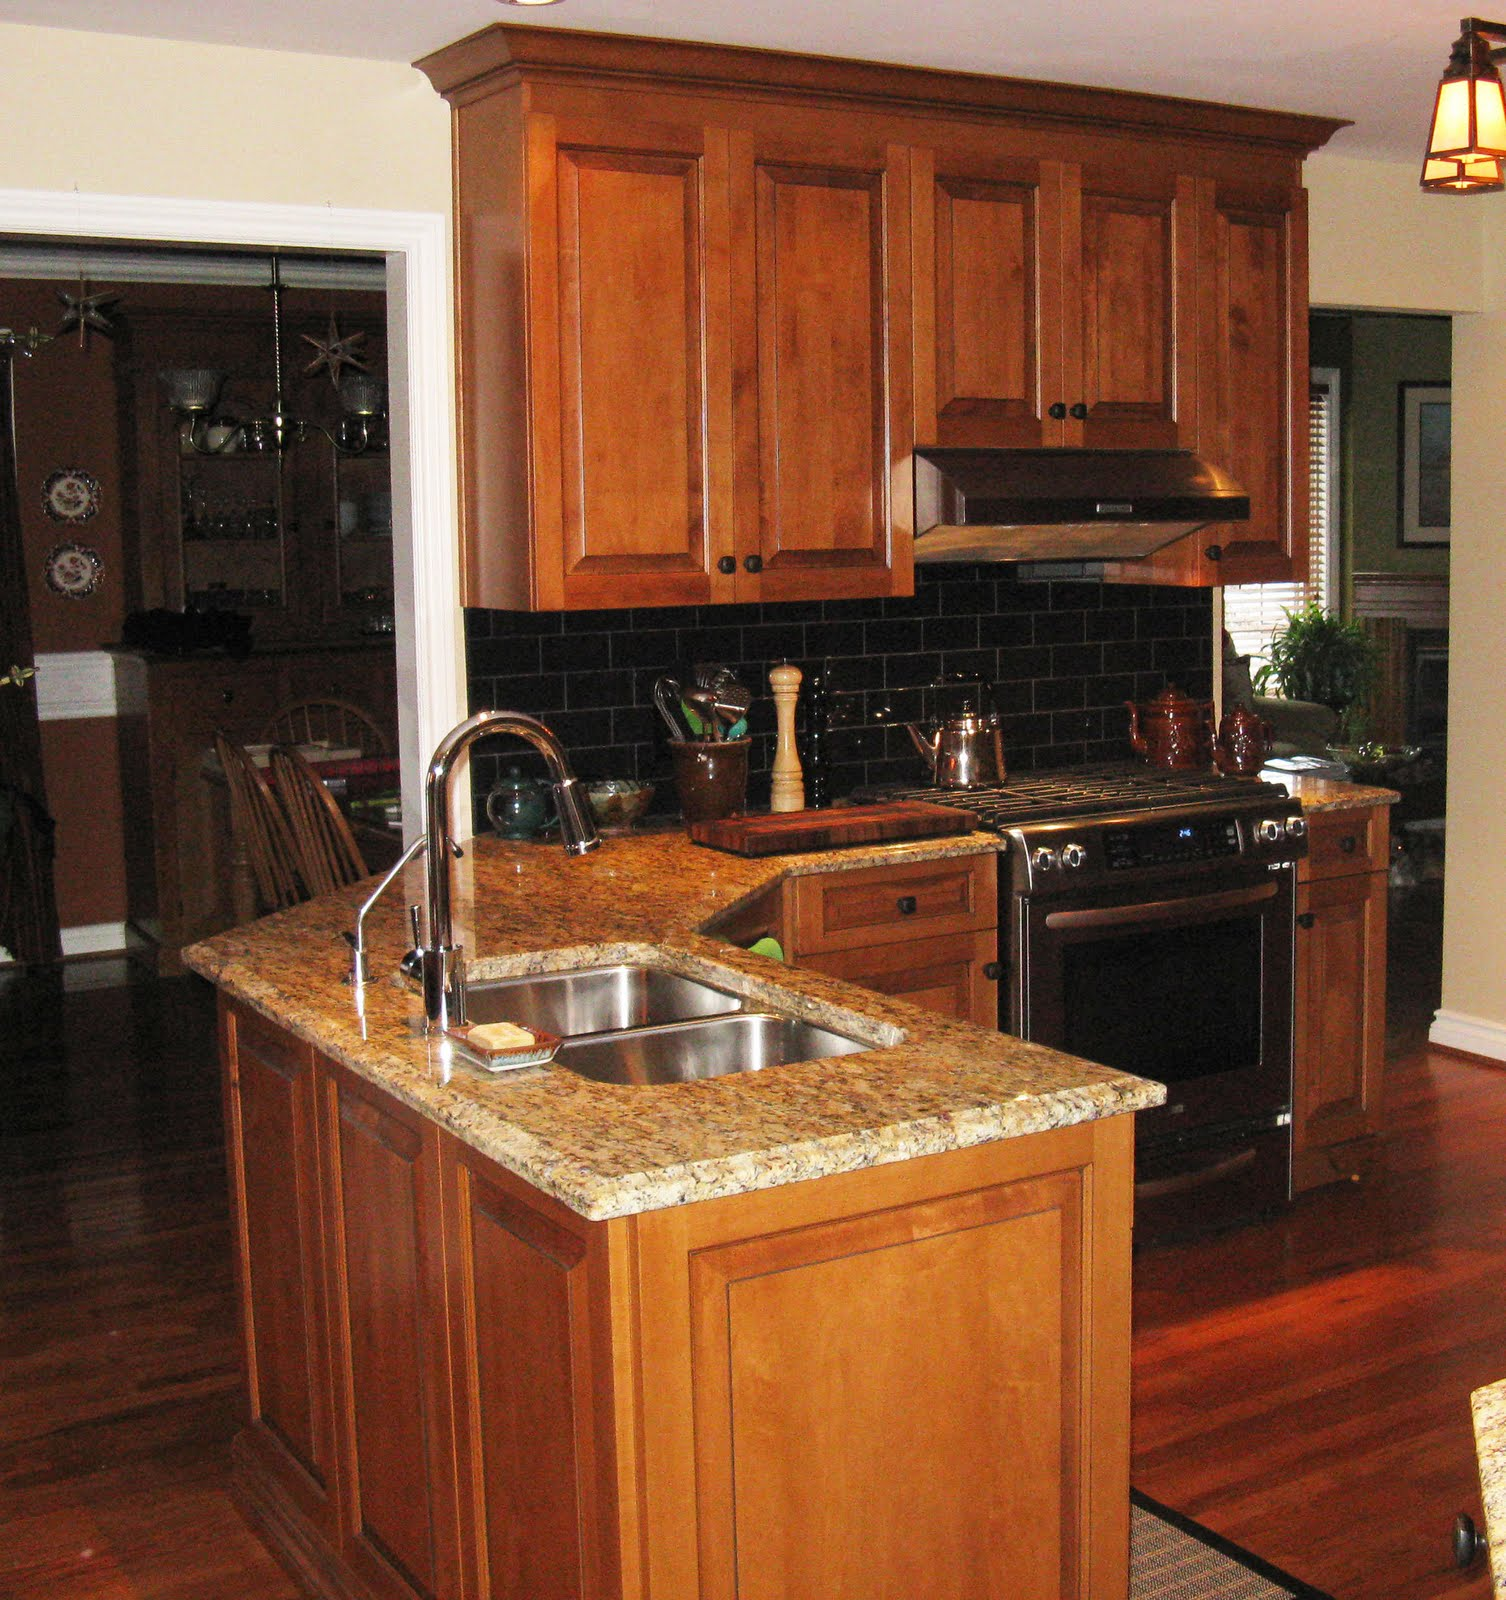 FIVE STAR PHOTO GALLERY: Maple Cabinets